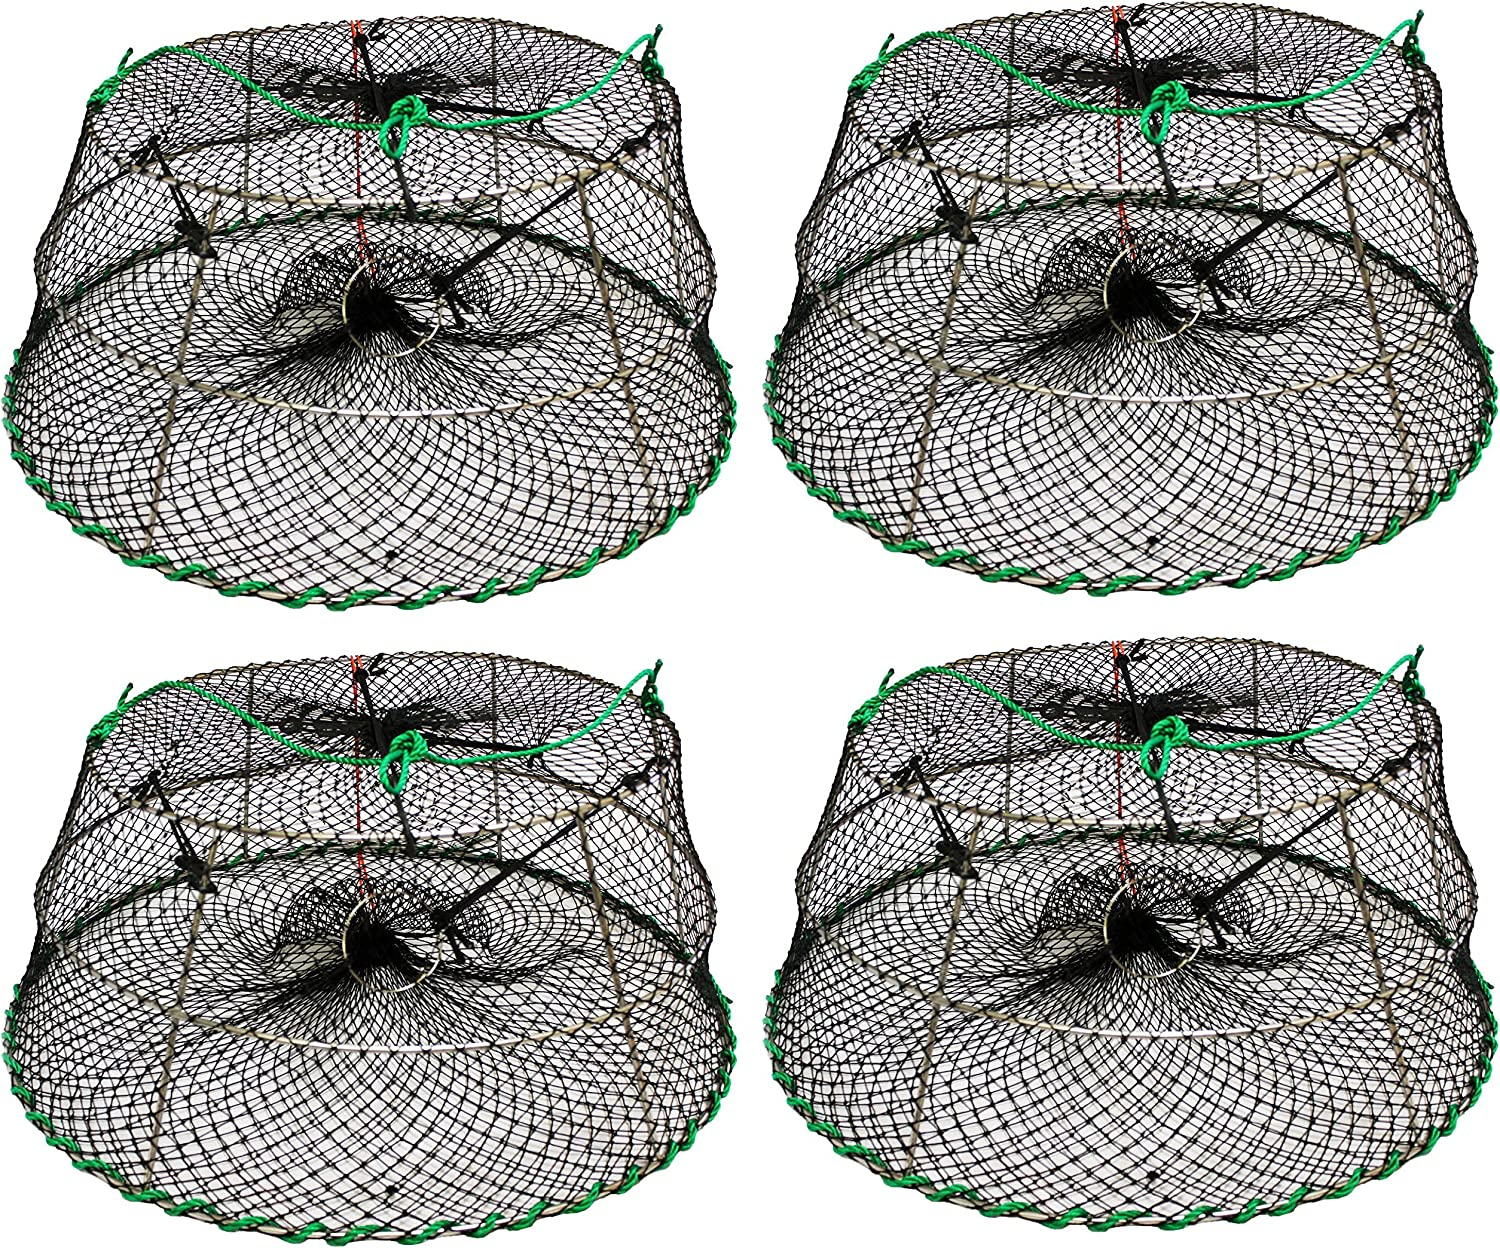 Stretched Mesh Size: 1-3//4 30 X 20X 12 4 Pack of KUFA SPORTS Tower Style Stainless Steel Prawn Trap Size CT77x4